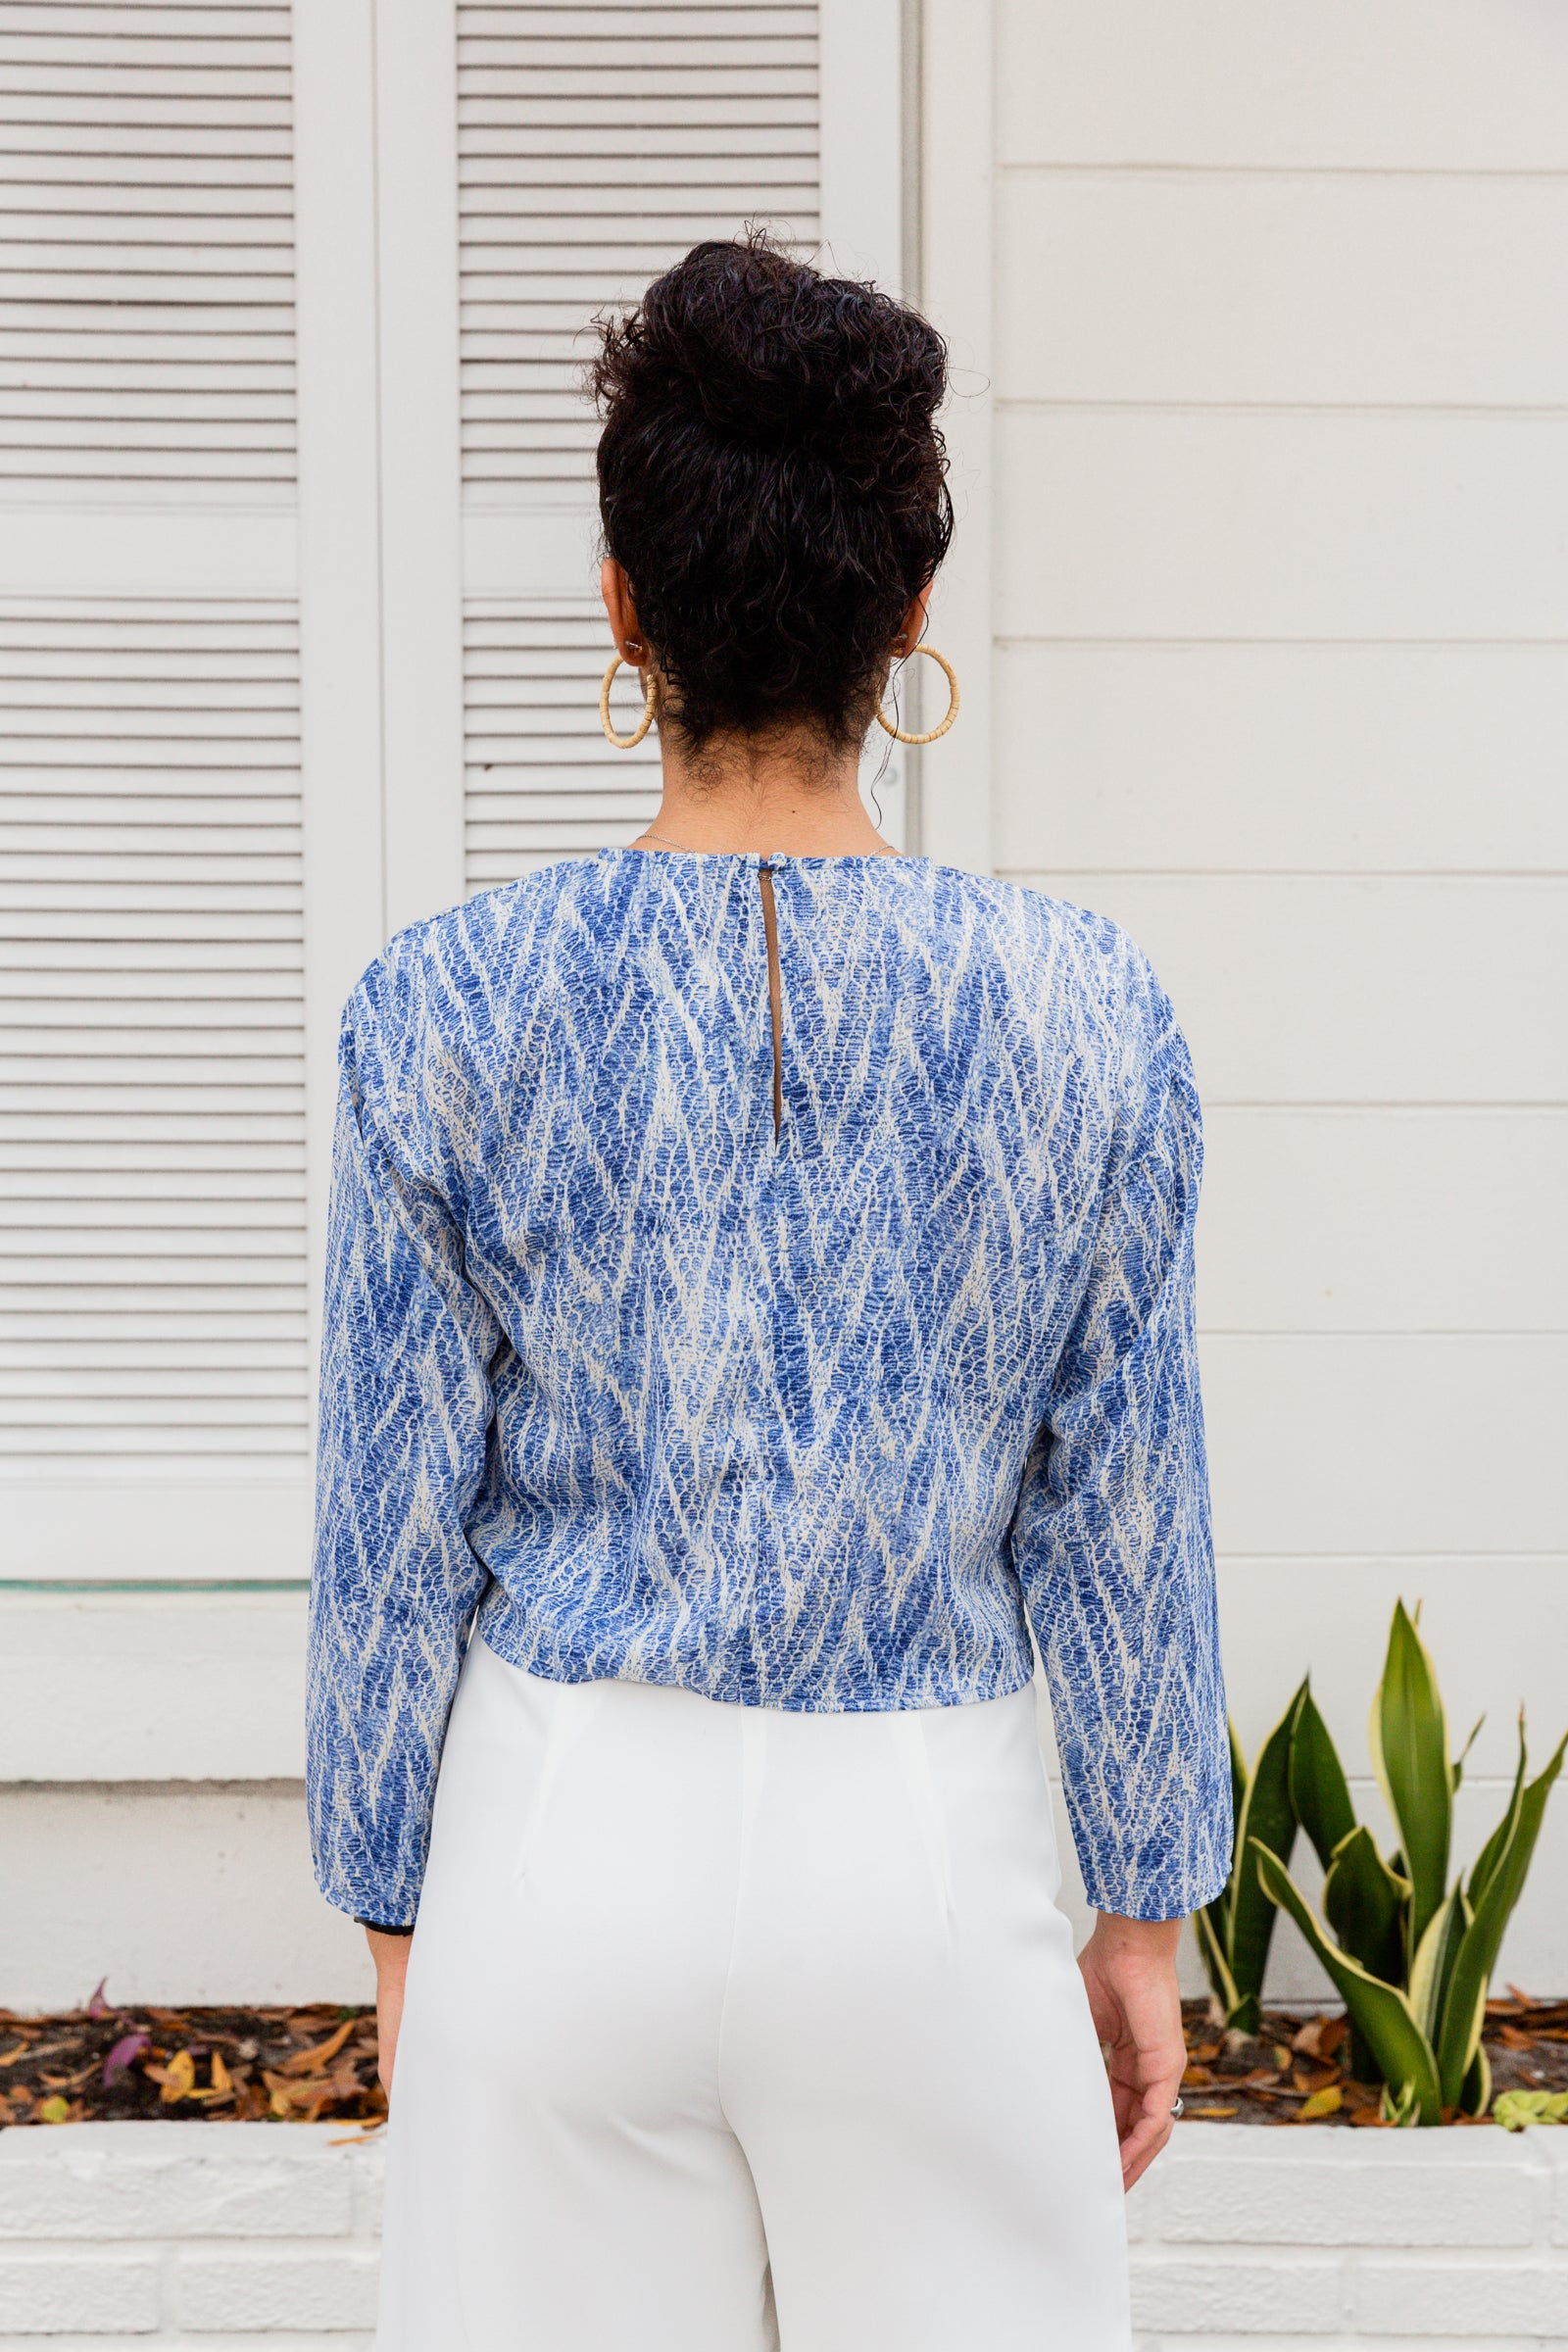 Blue and white prints go across the fabric of this lightweight blouse. Long sleeves attach to a high u-neckline on a relaxed fit bodice silhouette before meeting a twisted front hem.